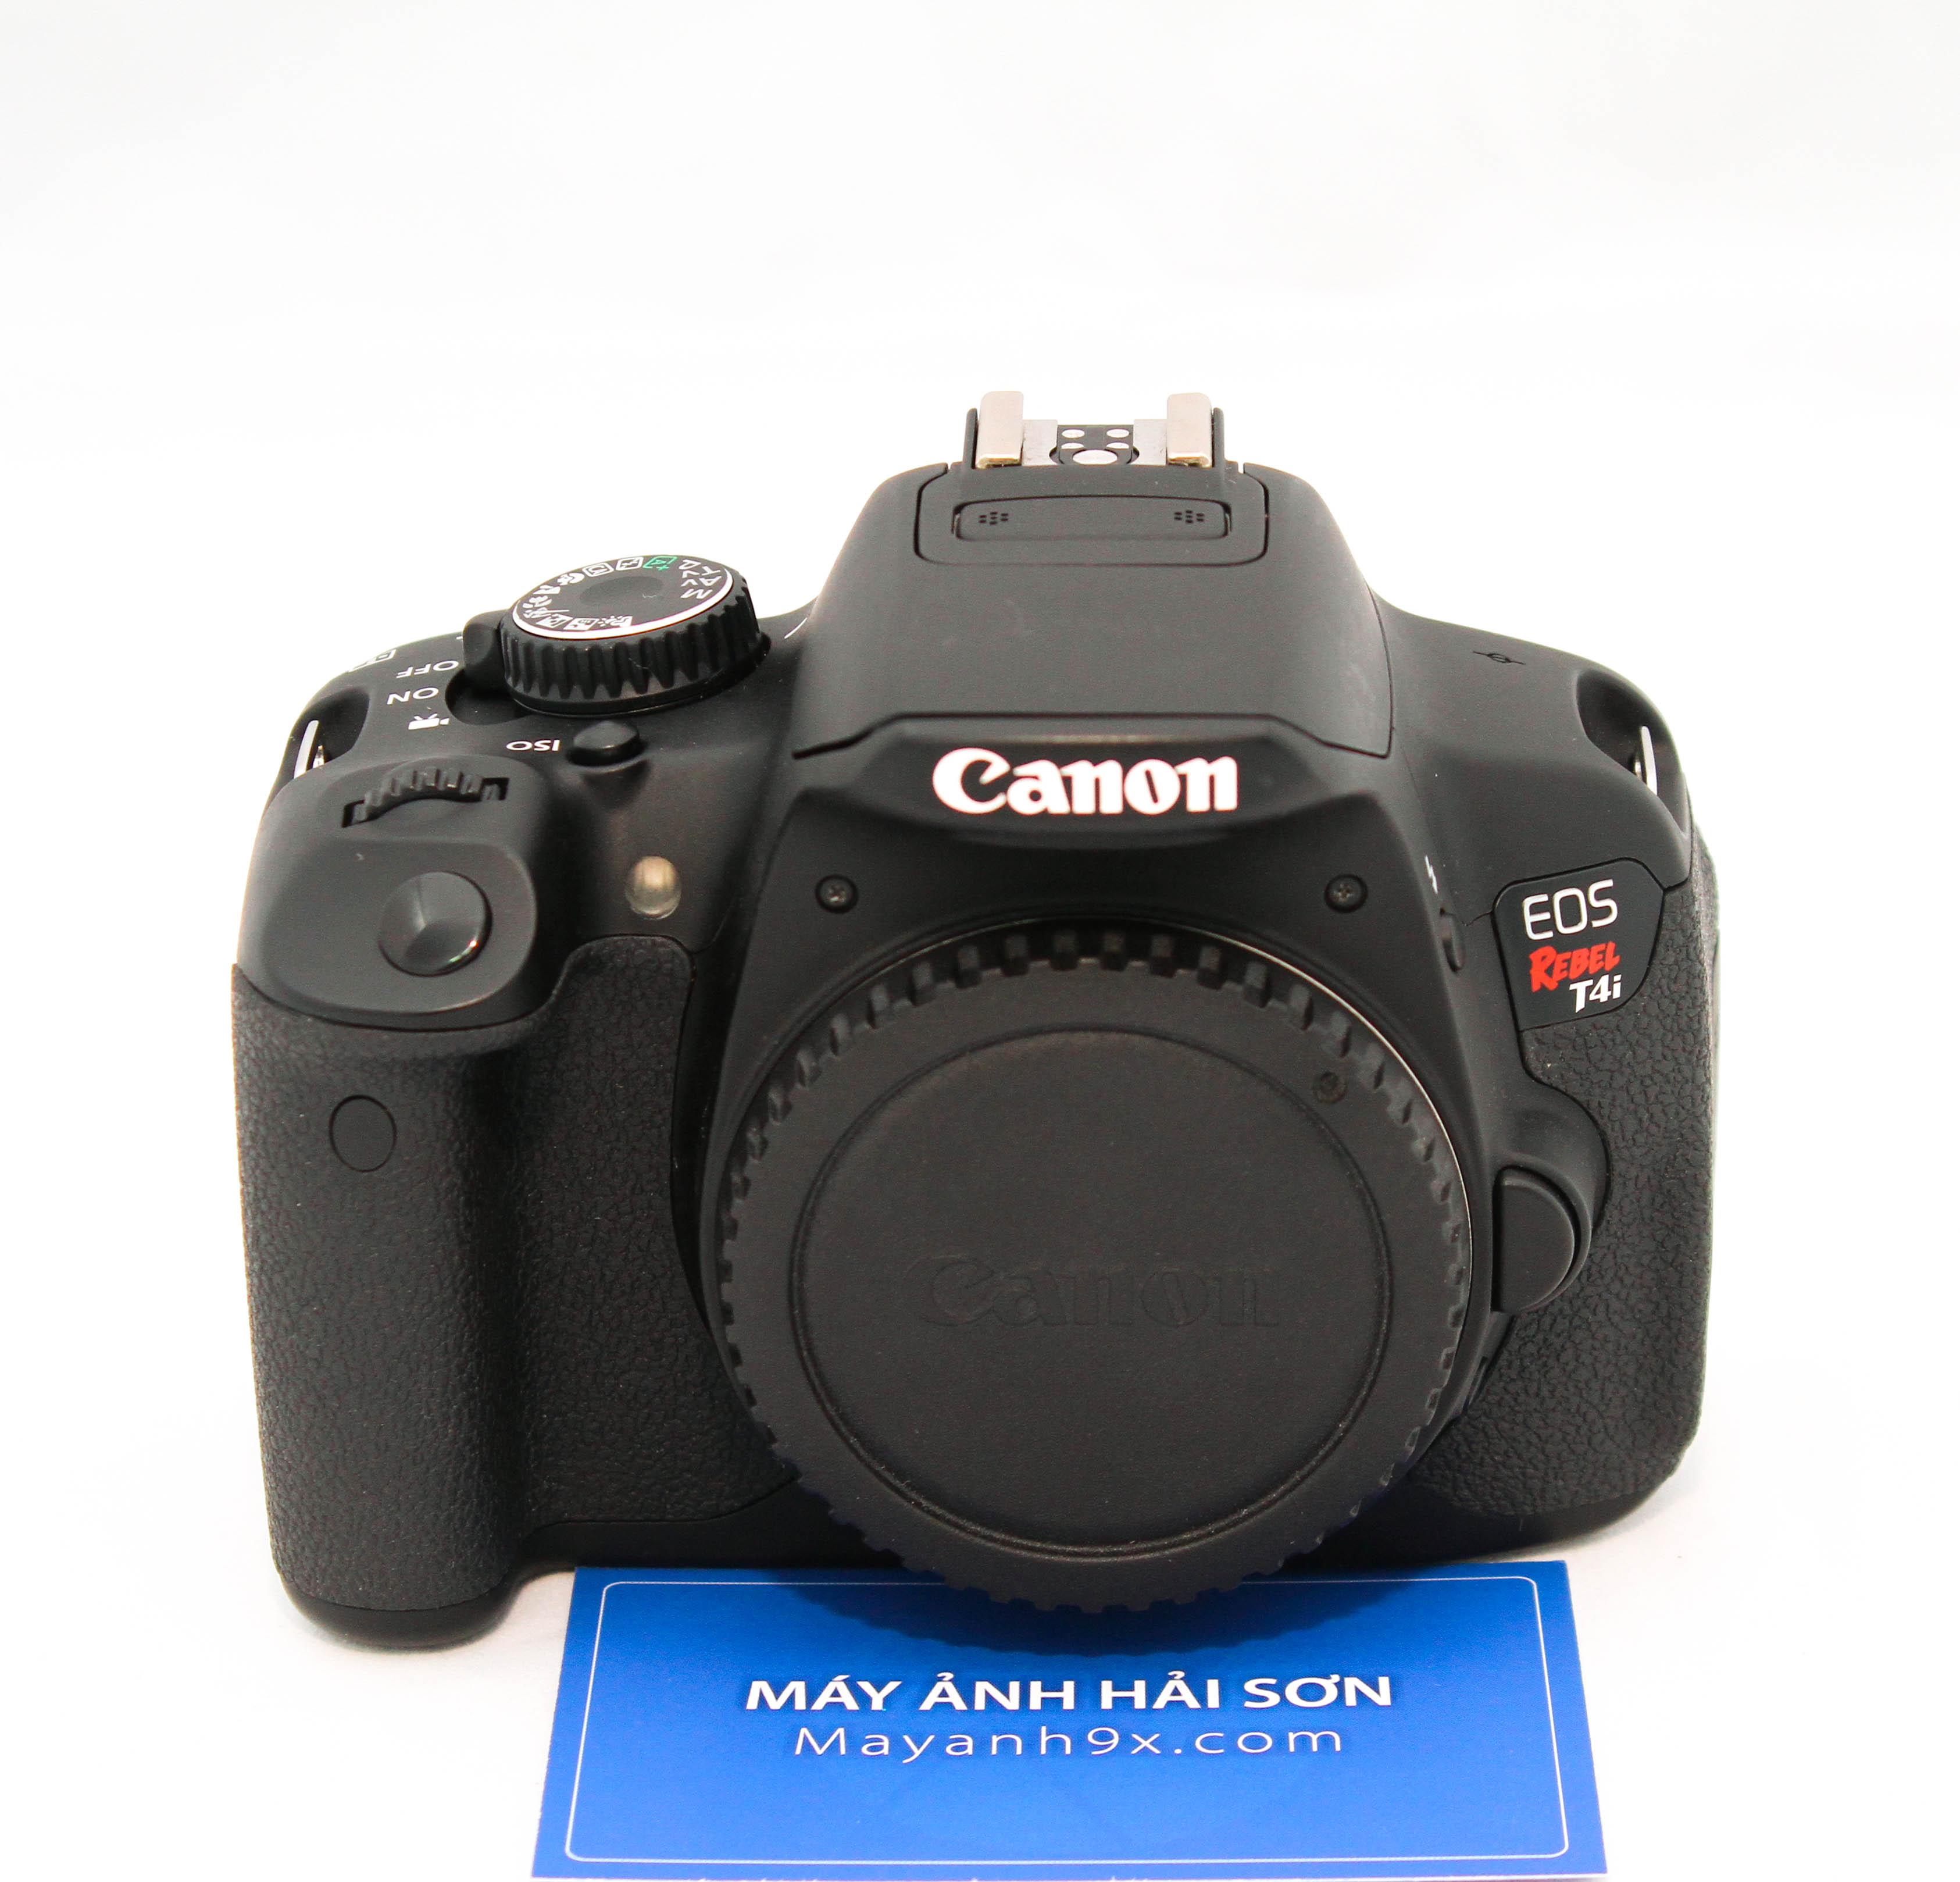 Canon EOS 650D REBEL T4i Mới 9.